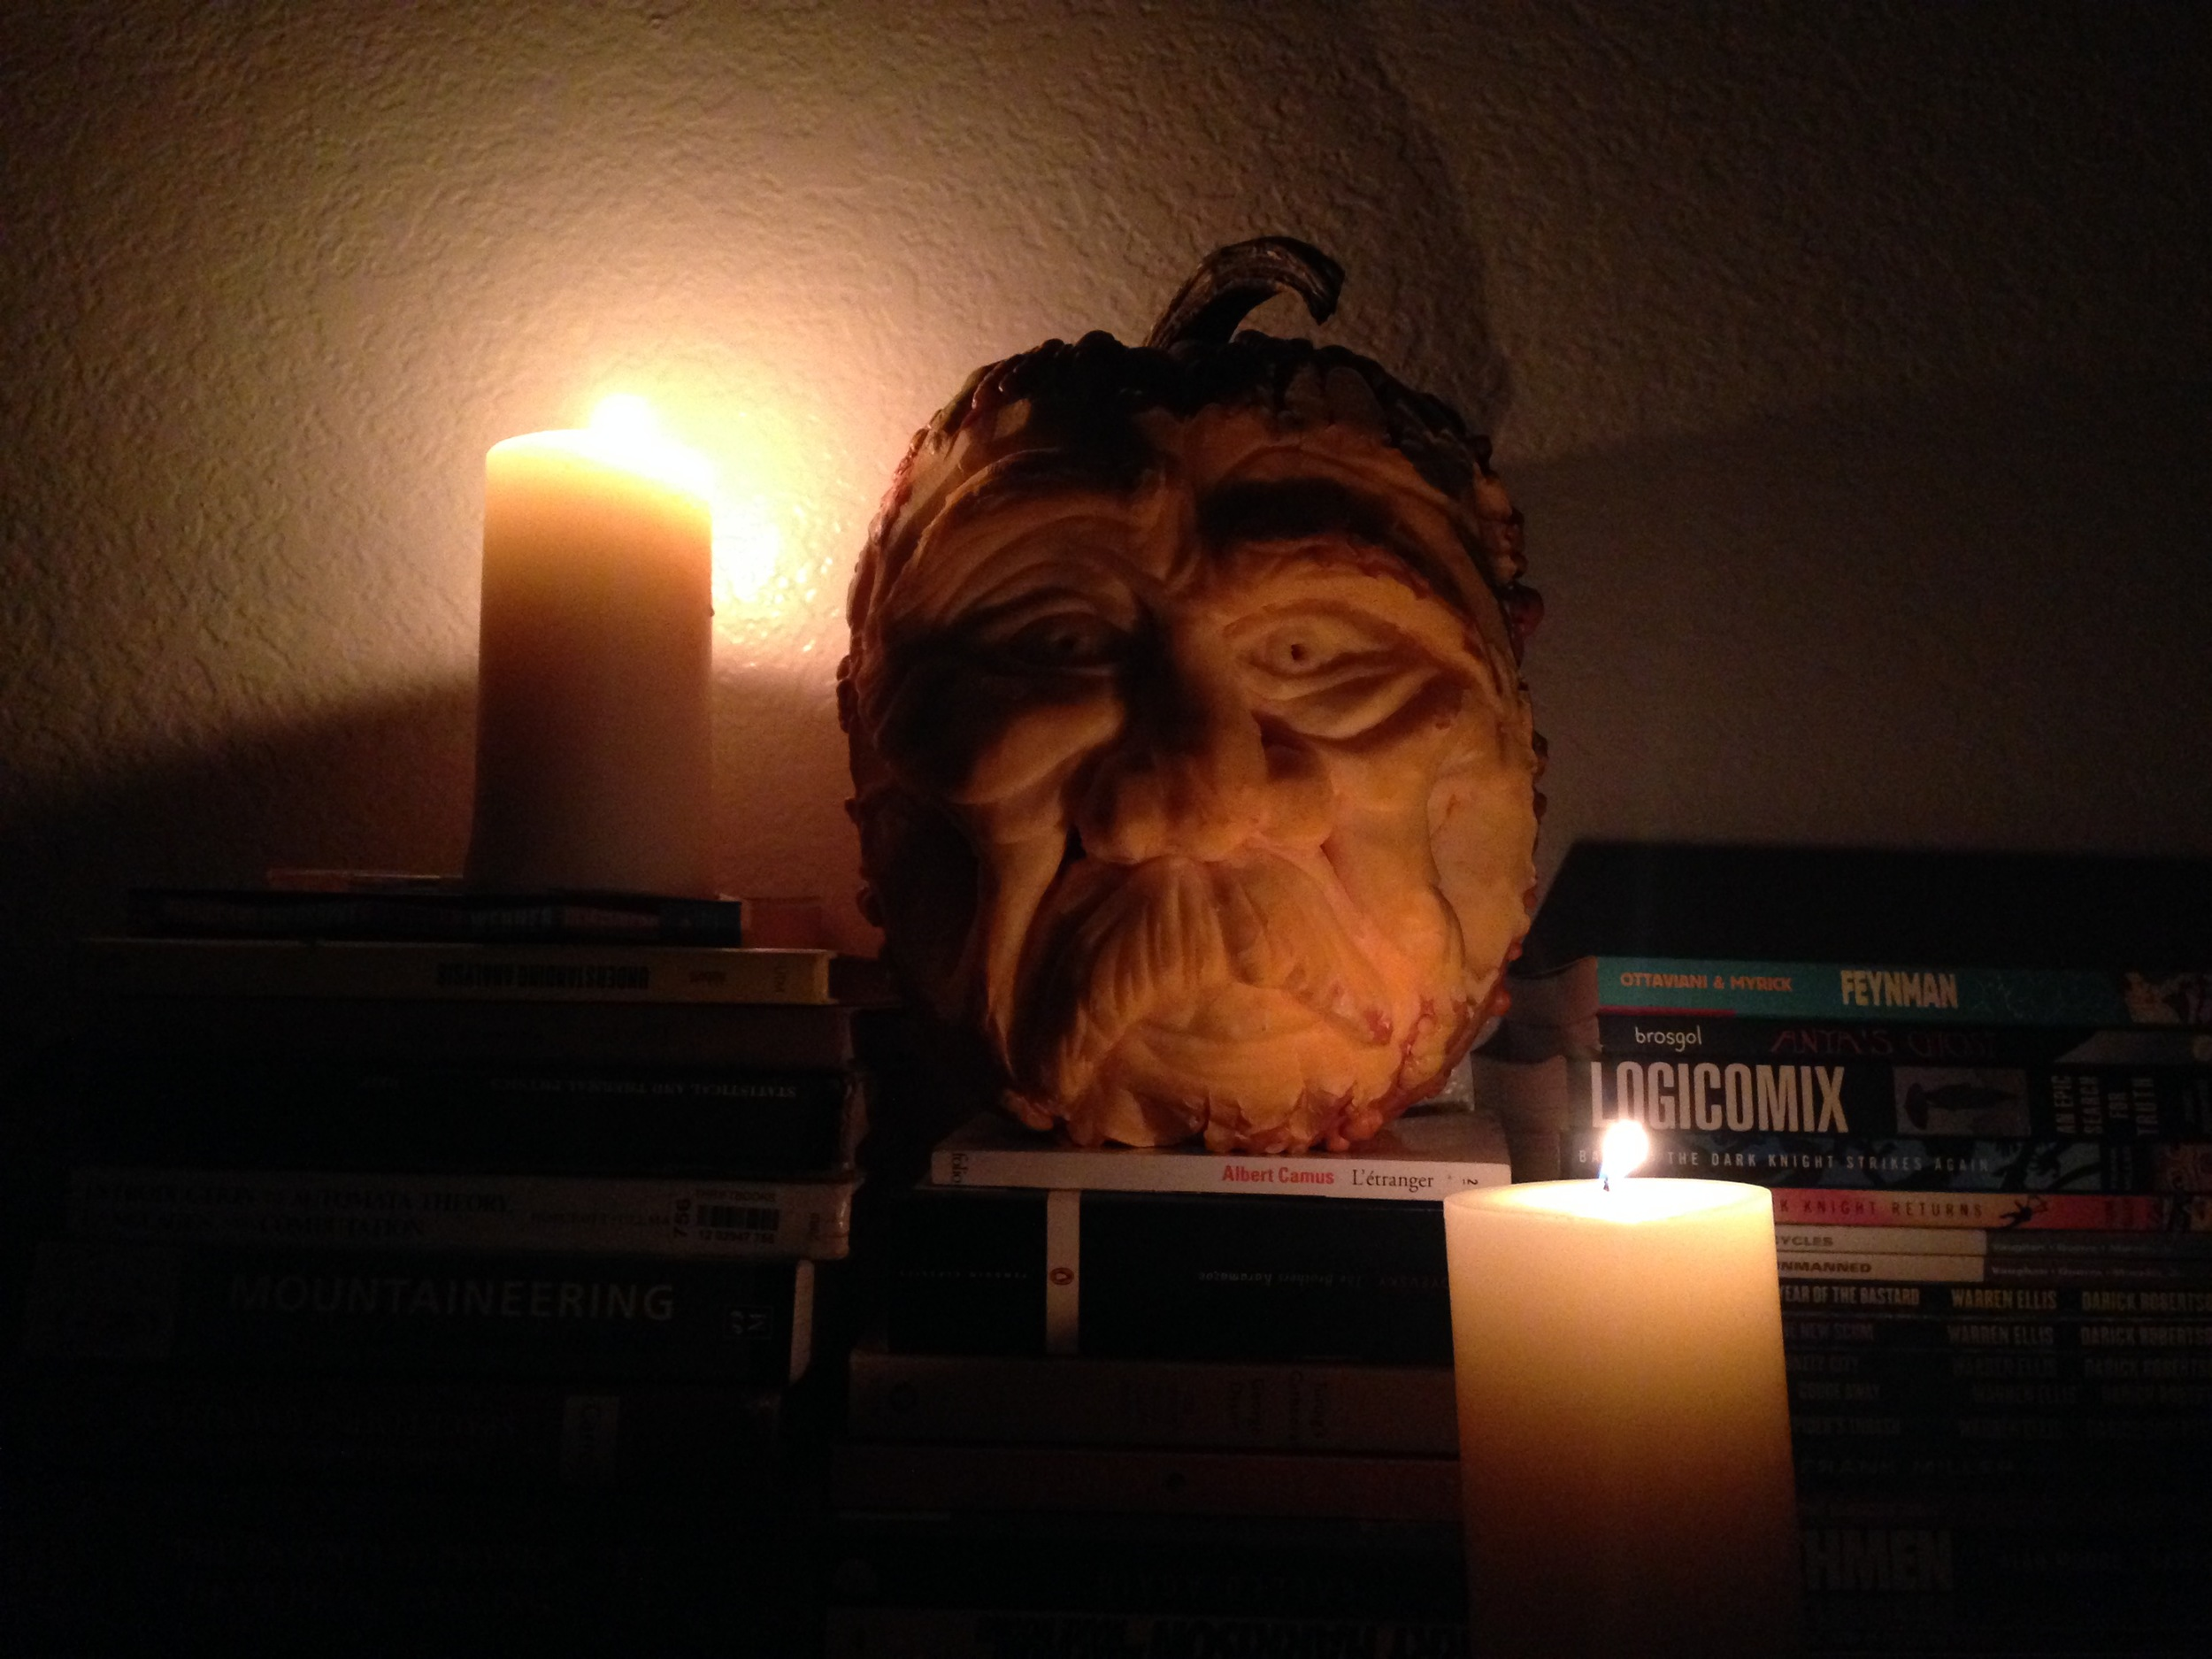 Mortimer lit by two candles. Look at that old wrinkly face and big ole mustache.